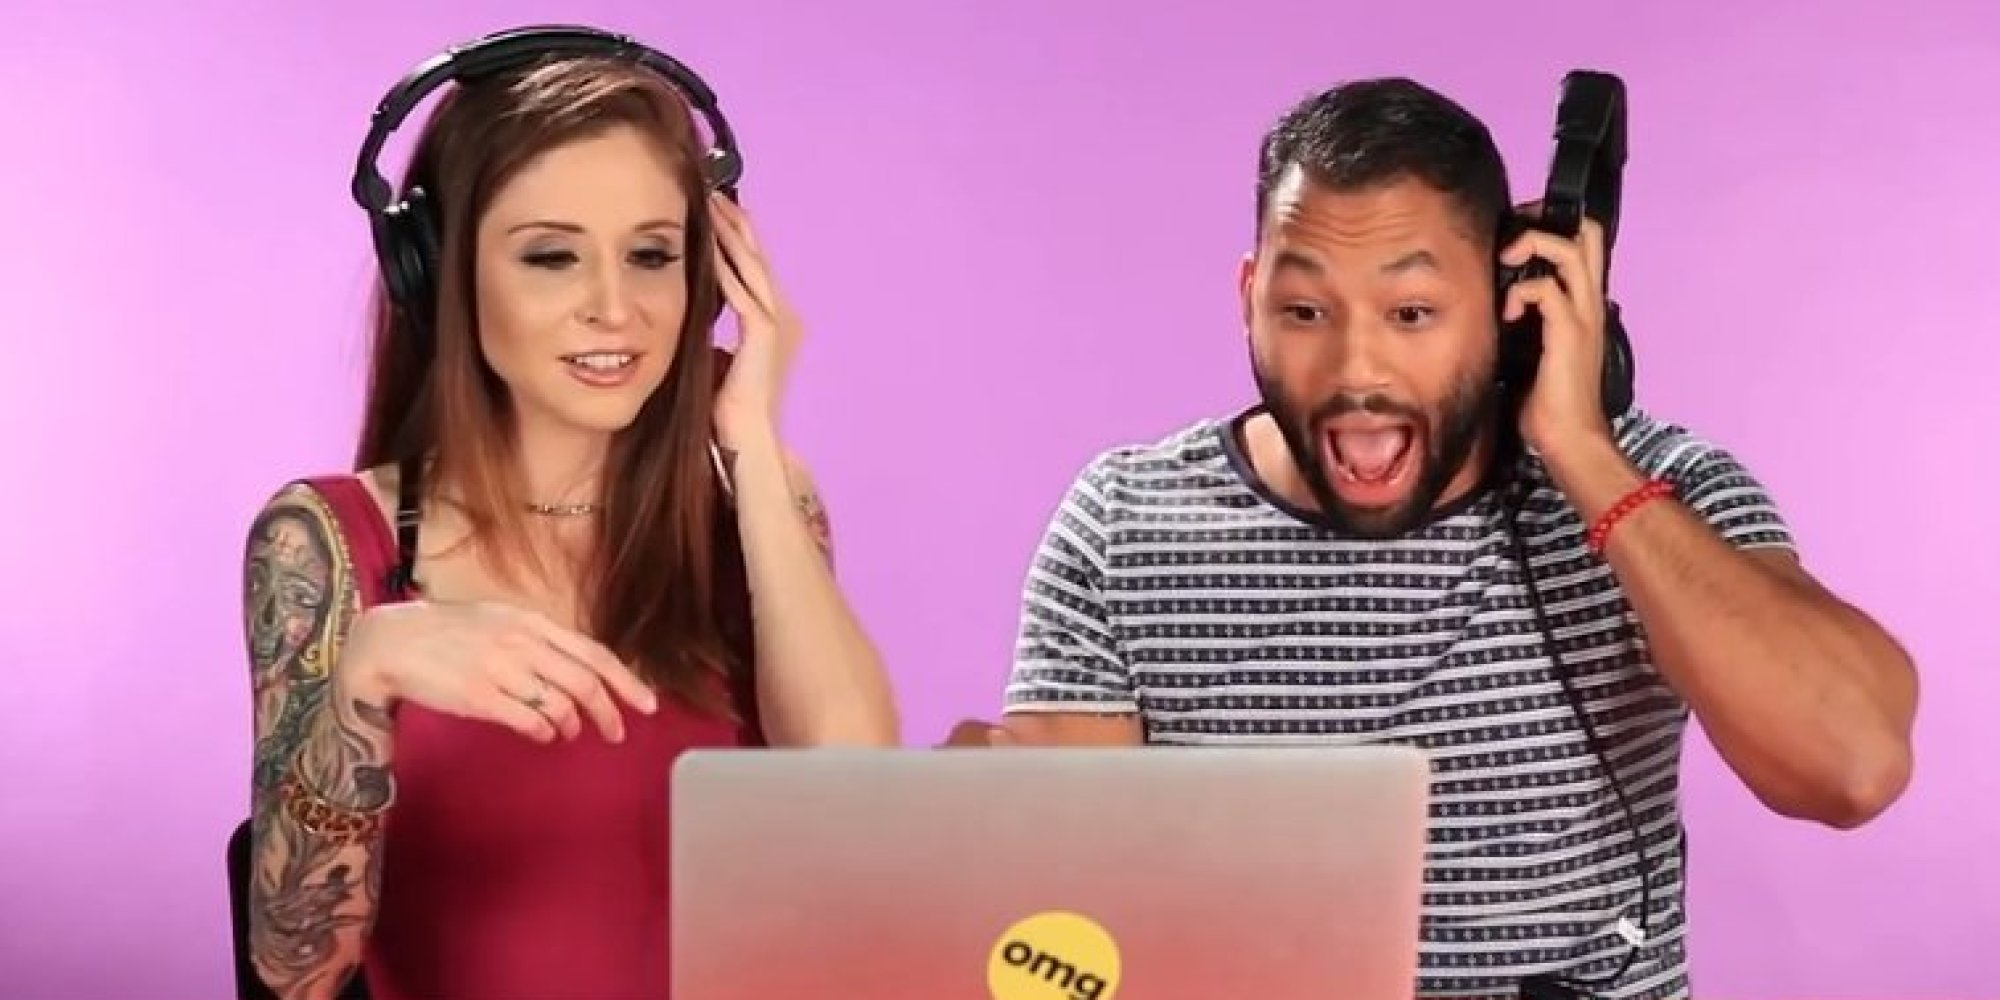 Watching Porn With Porn Stars Is As Hilariously Awkward As You'd Expect |  HuffPost